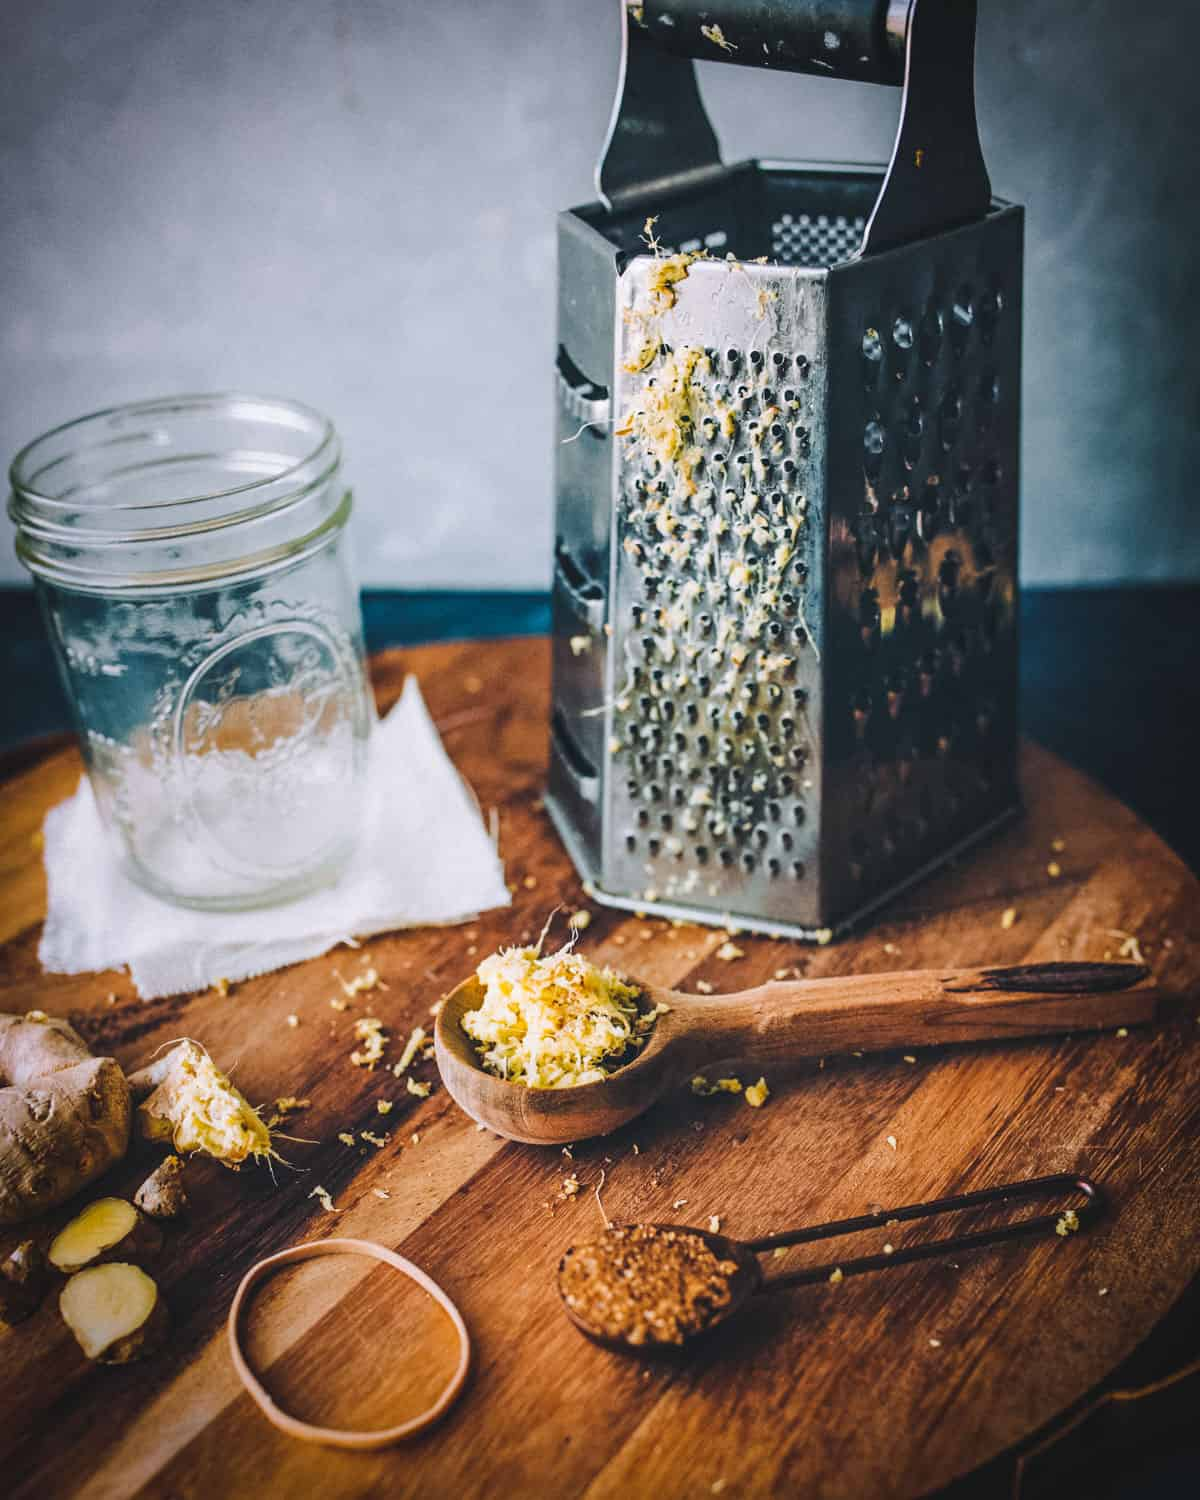 a cheese grater and a wooden spoon of grated ginger